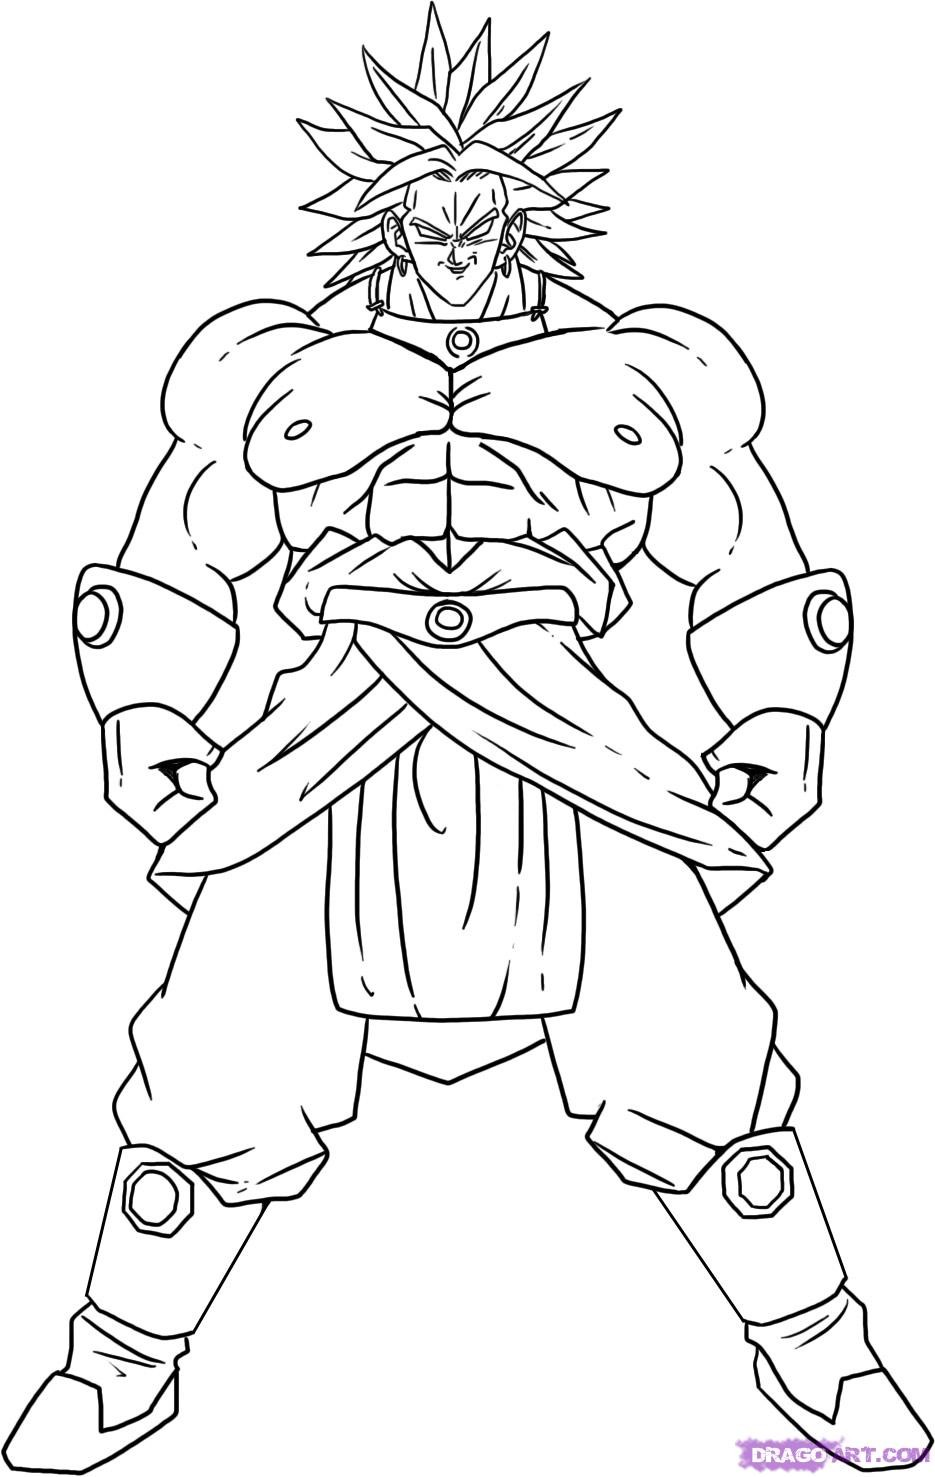 coloring pages dragonballz - photo#18